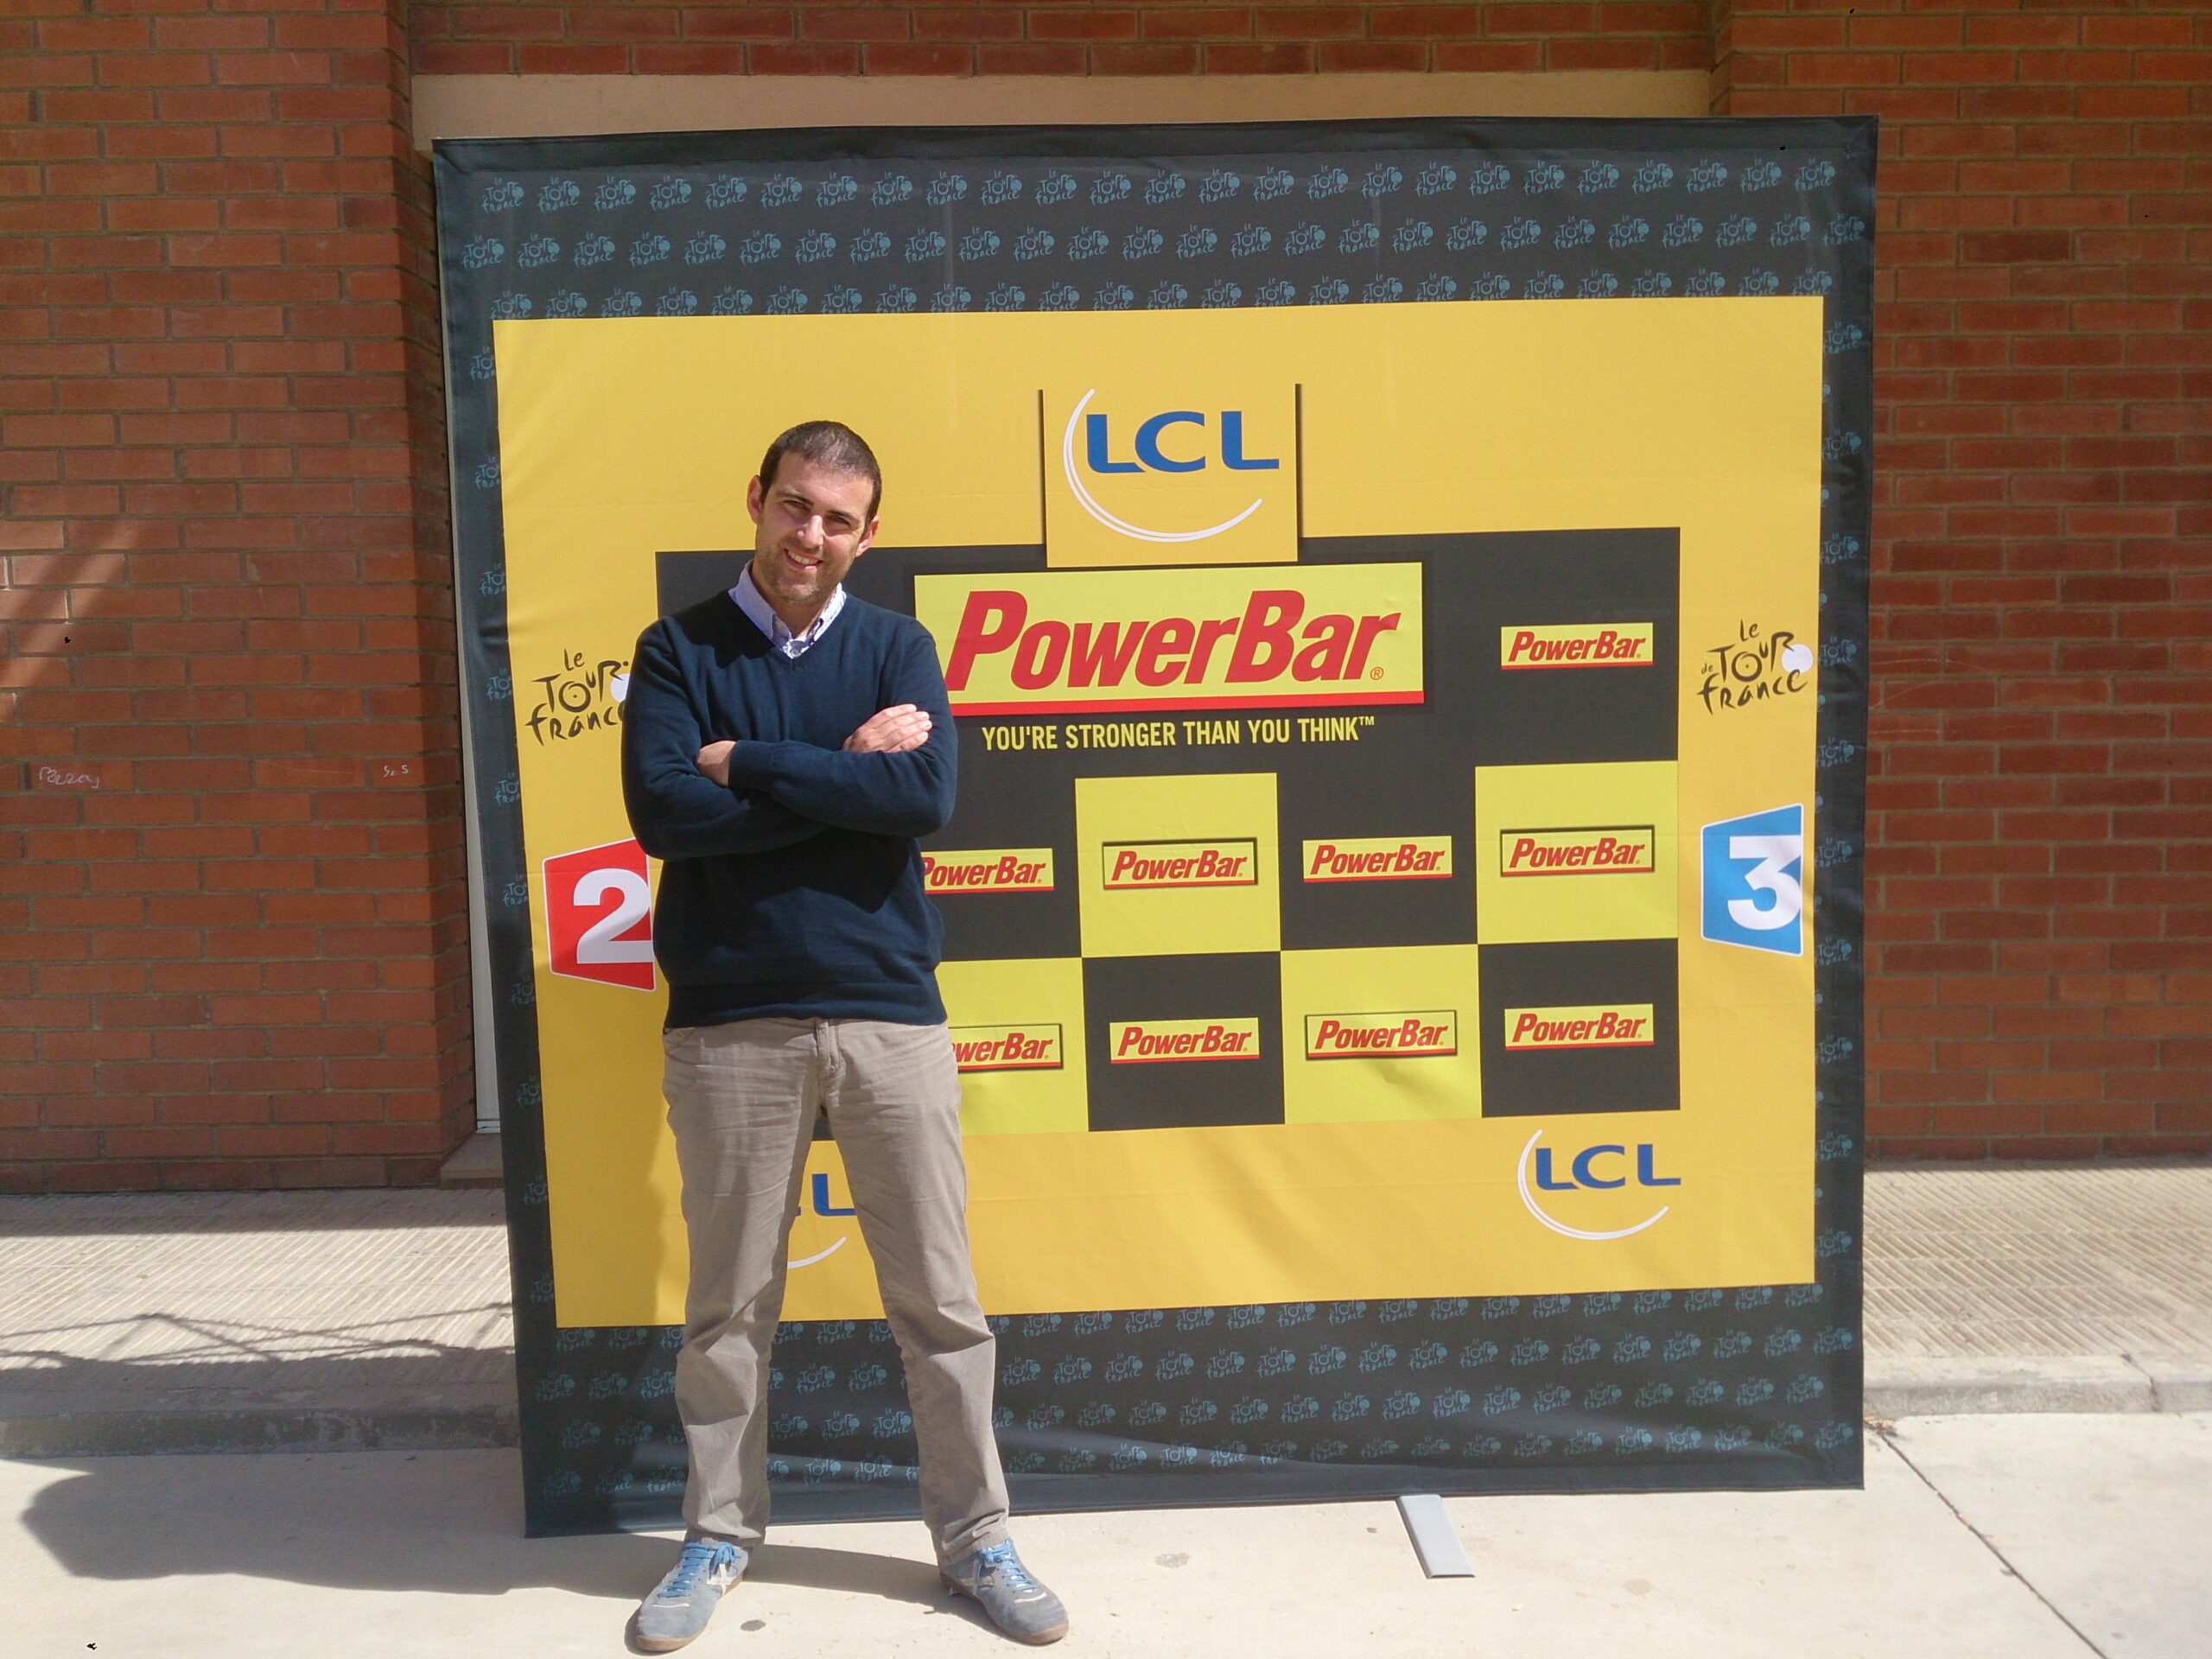 Display Photocall Powerbar